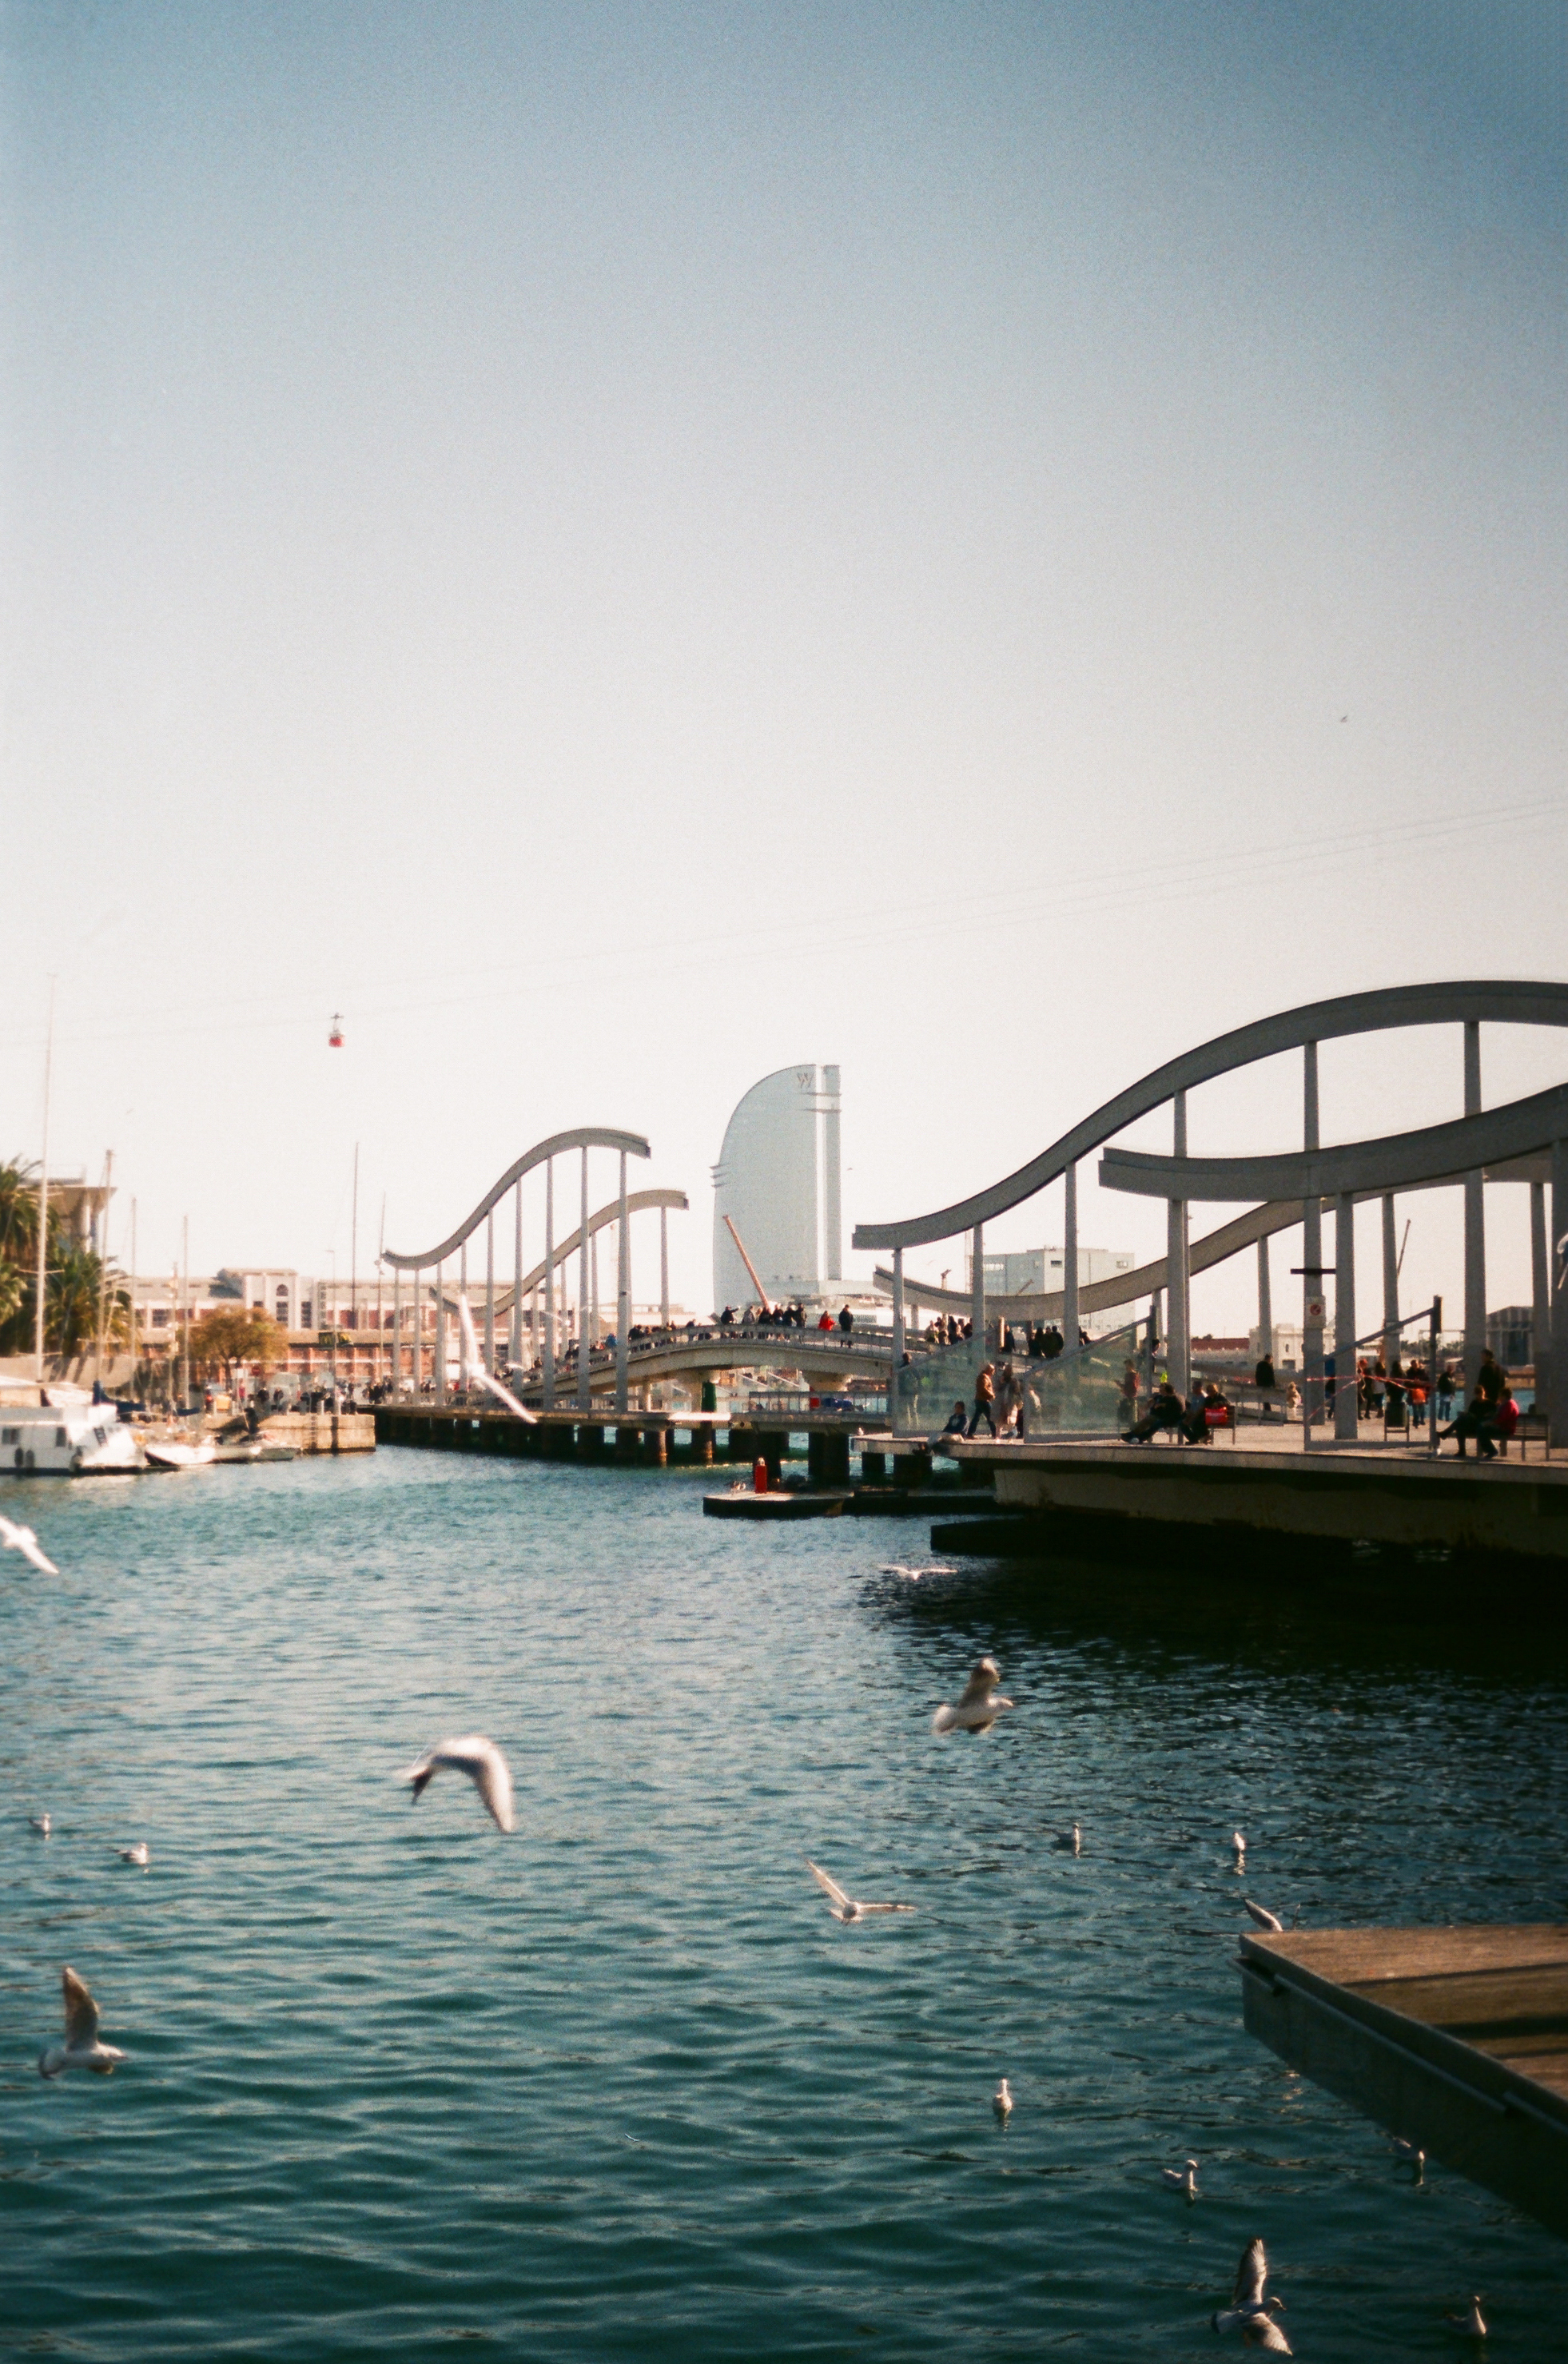 Barcelonabridge